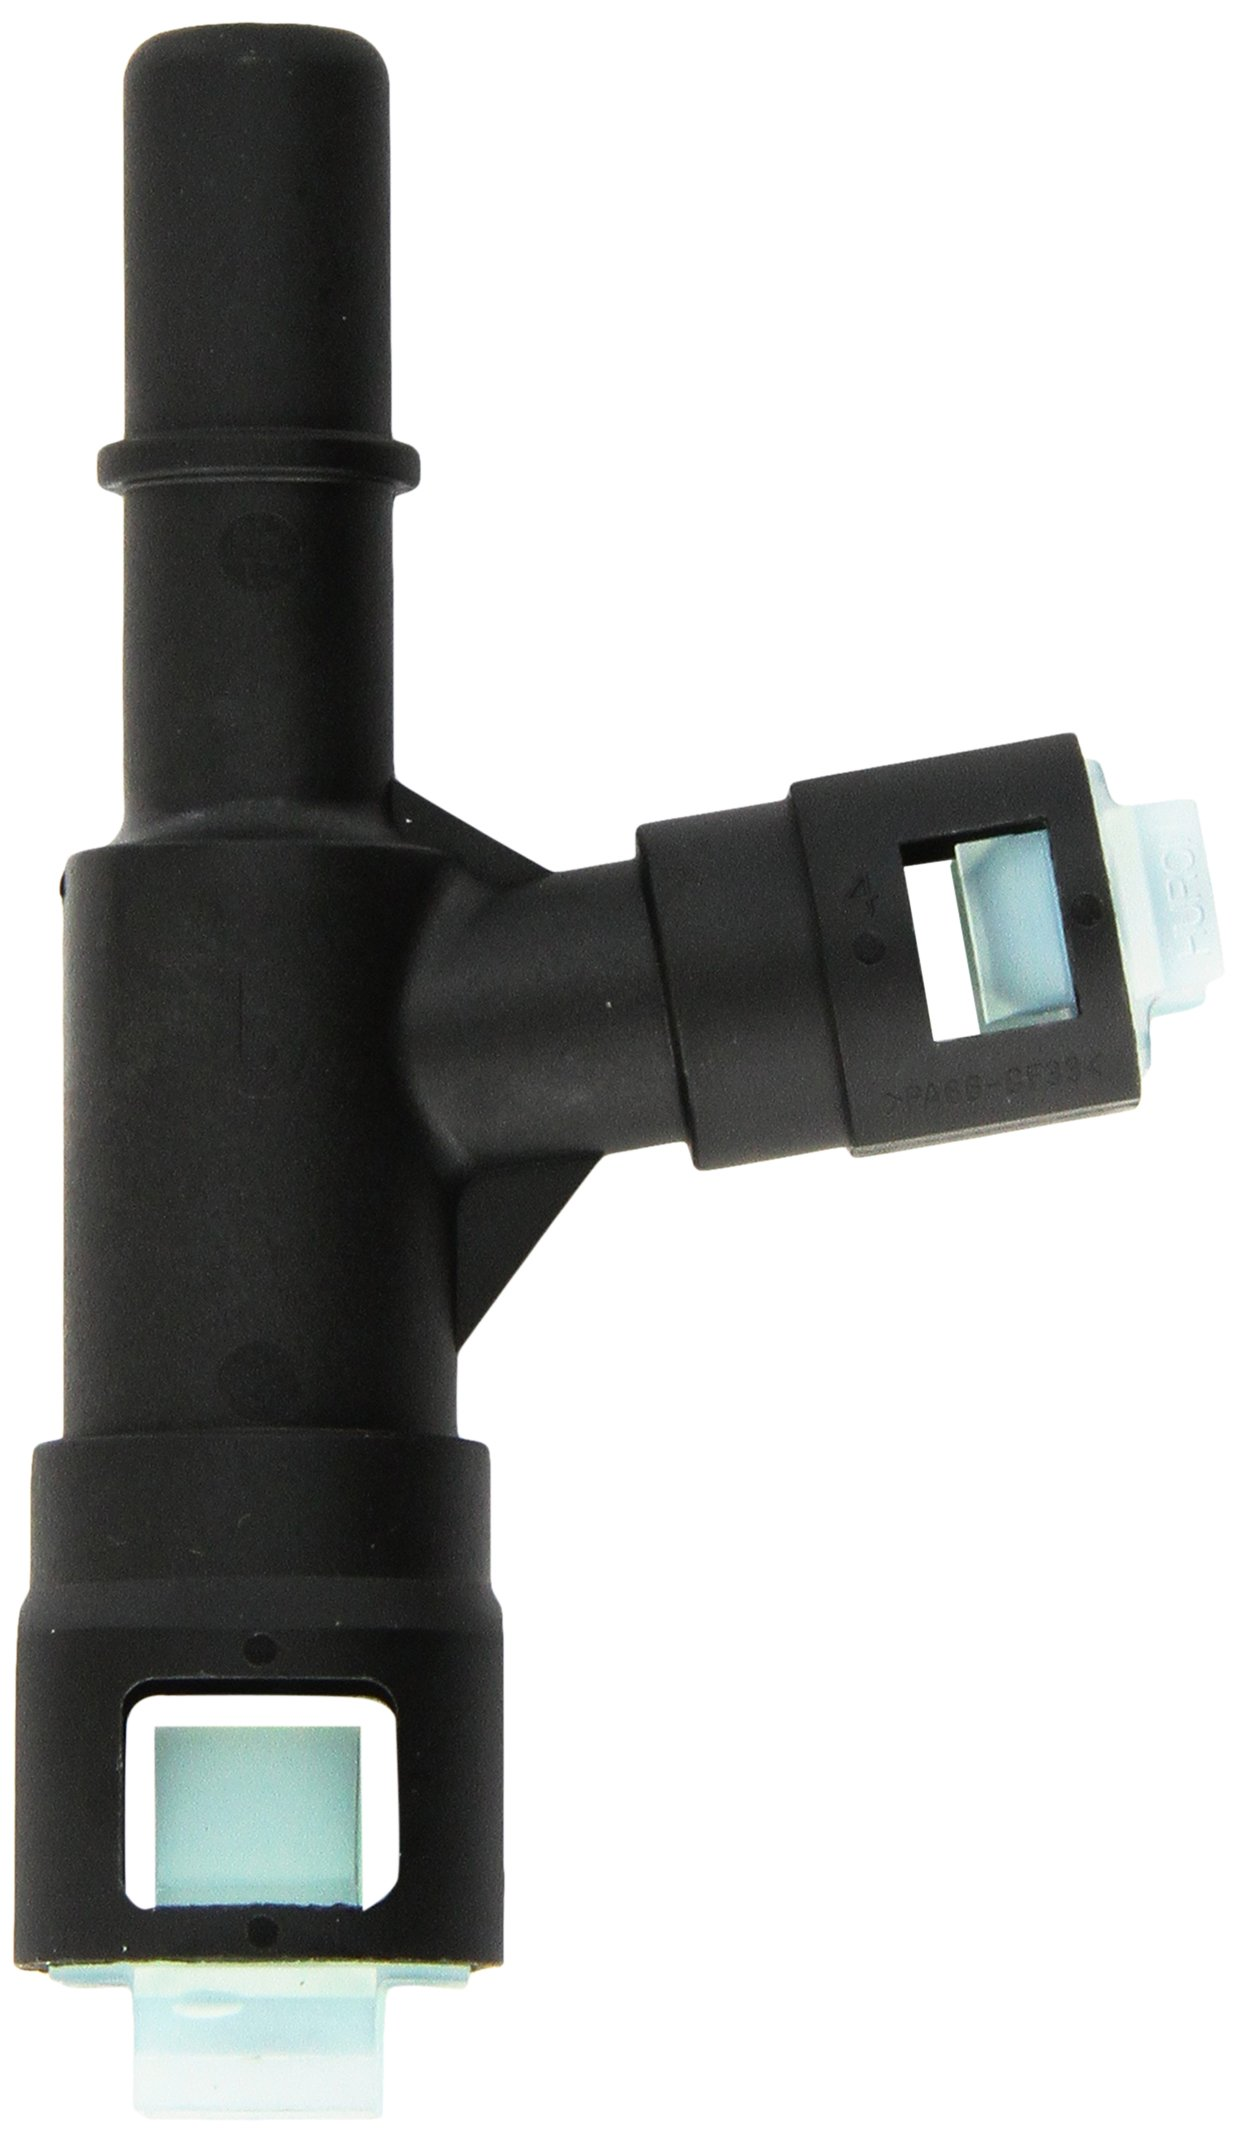 Genuine Gm 15055342 Auxiliary Heater Inlet Hose Tee 2003 Chevy Tahoe Core Connector Black Automotive